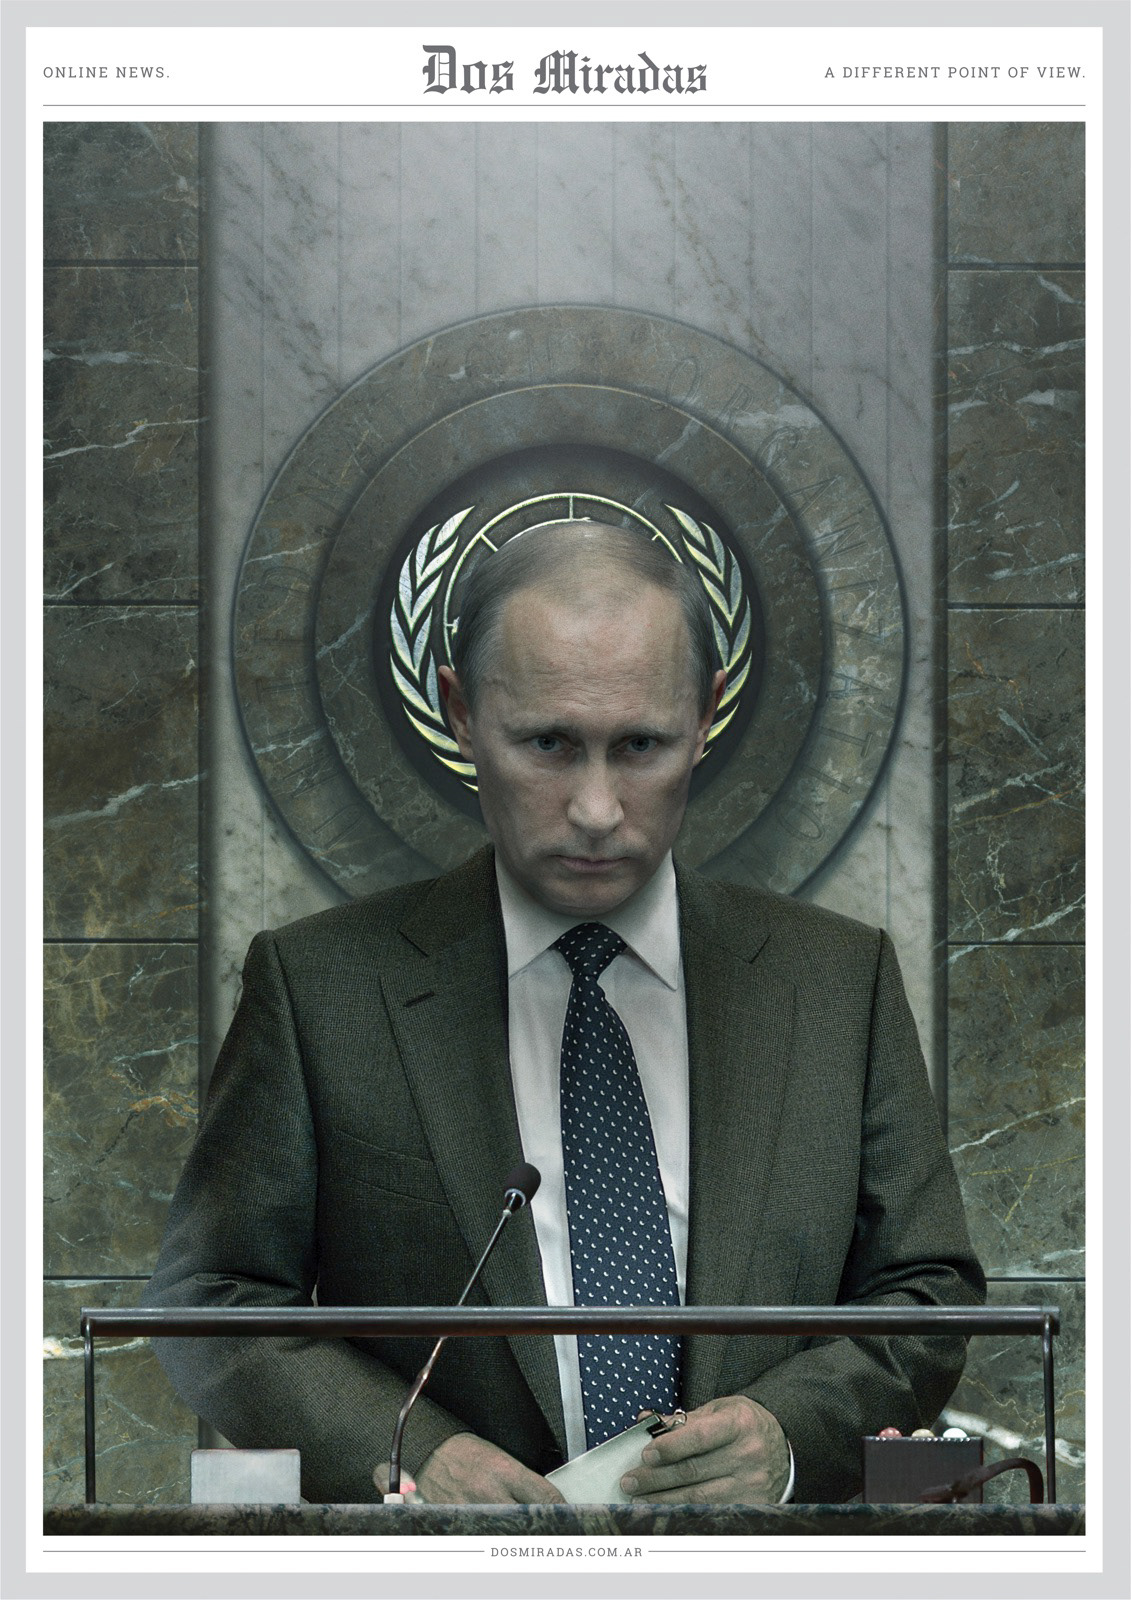 Dos Miradas: A different point of view - Vladimir Putin